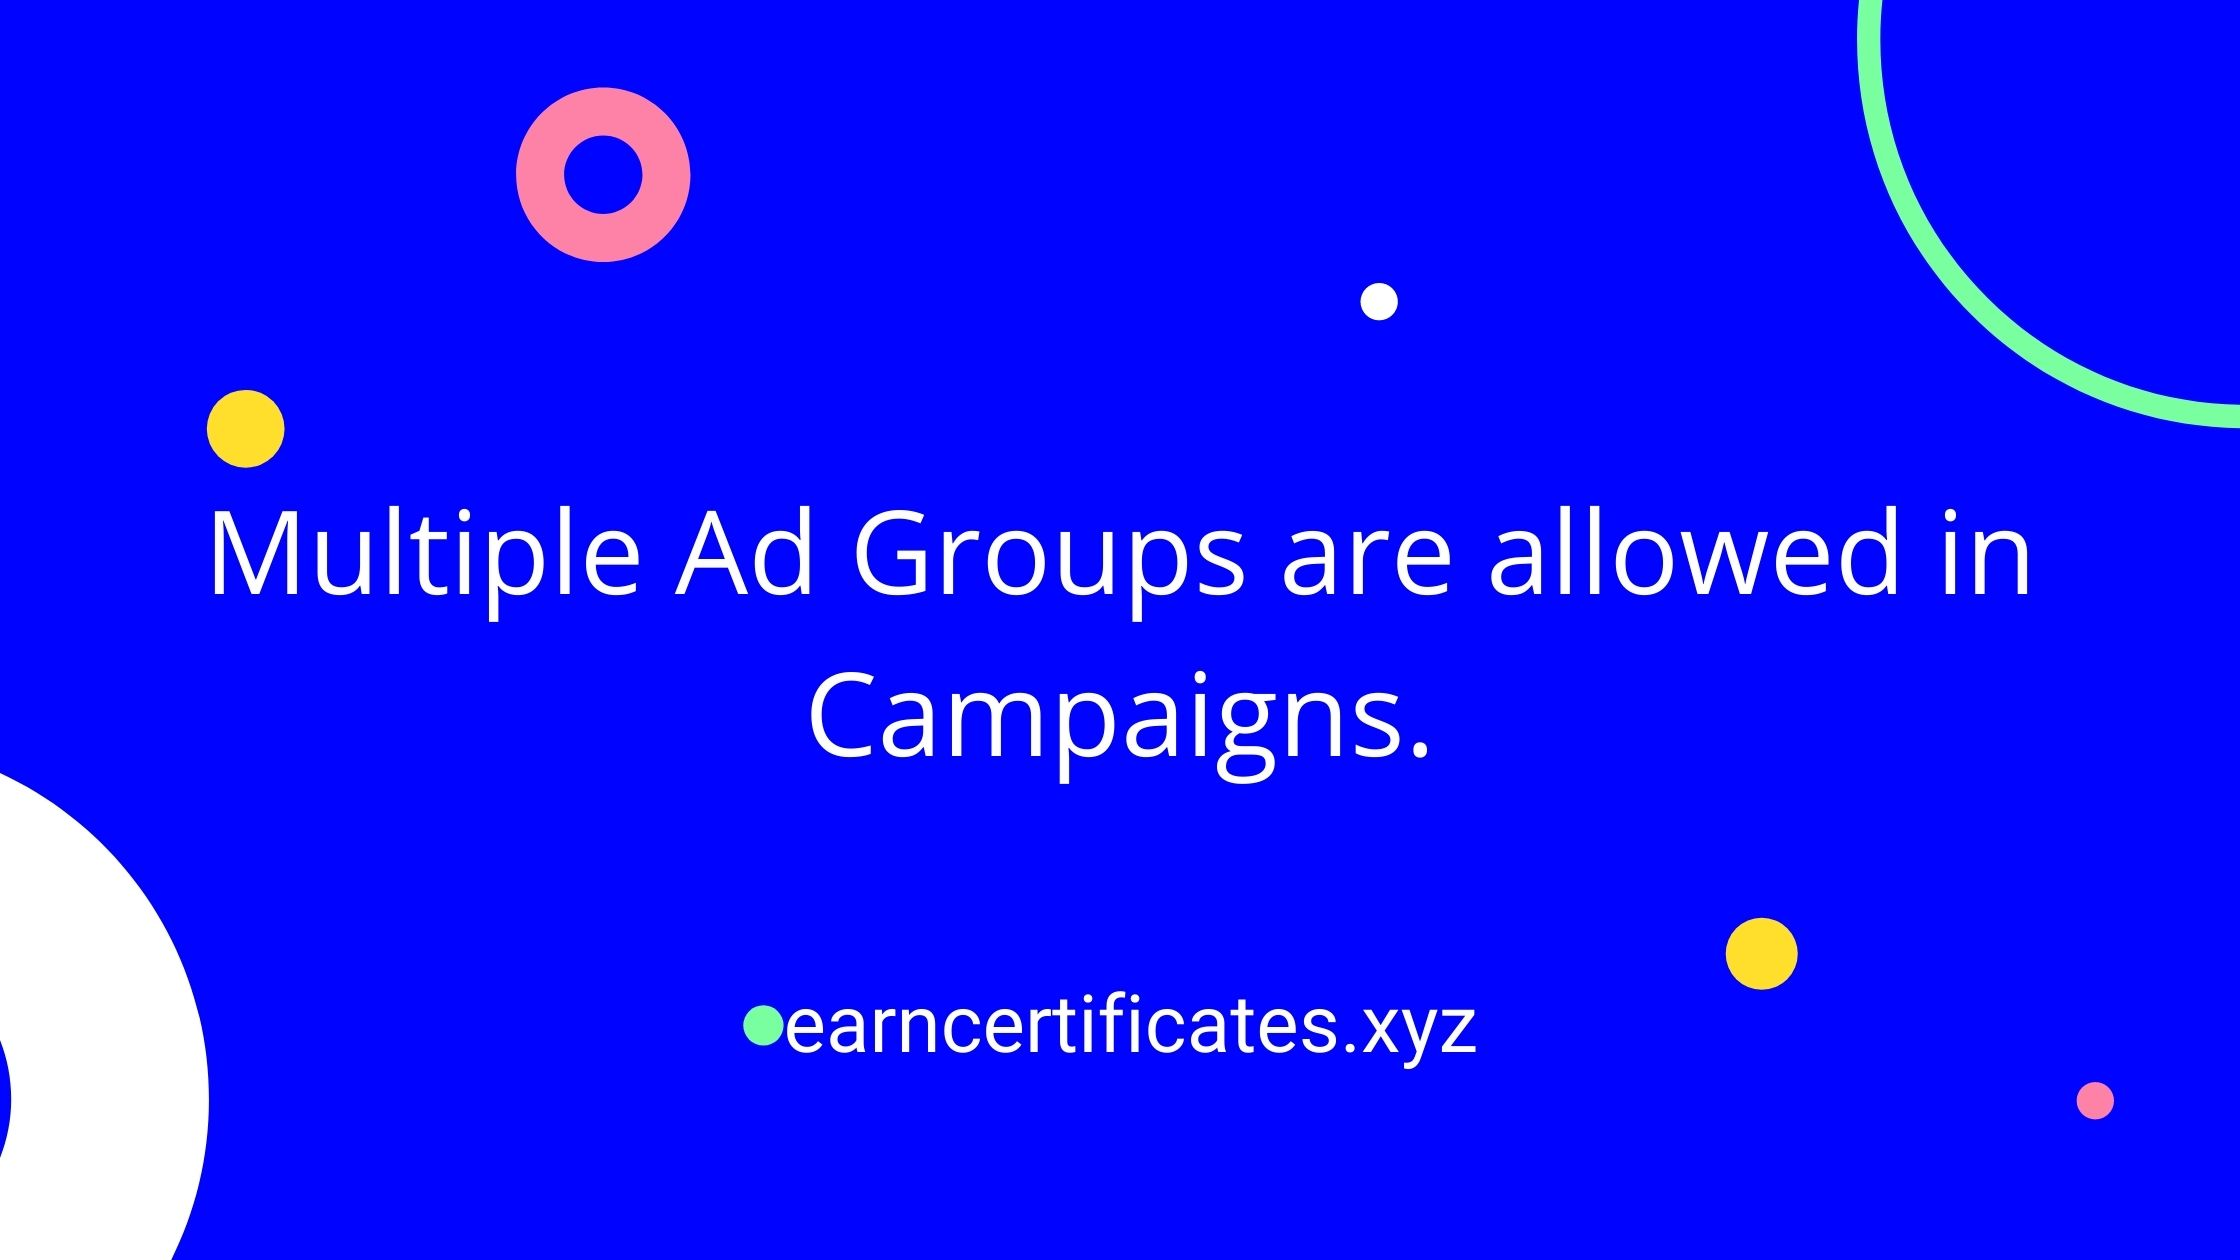 Multiple Ad Groups are allowed in Campaigns.